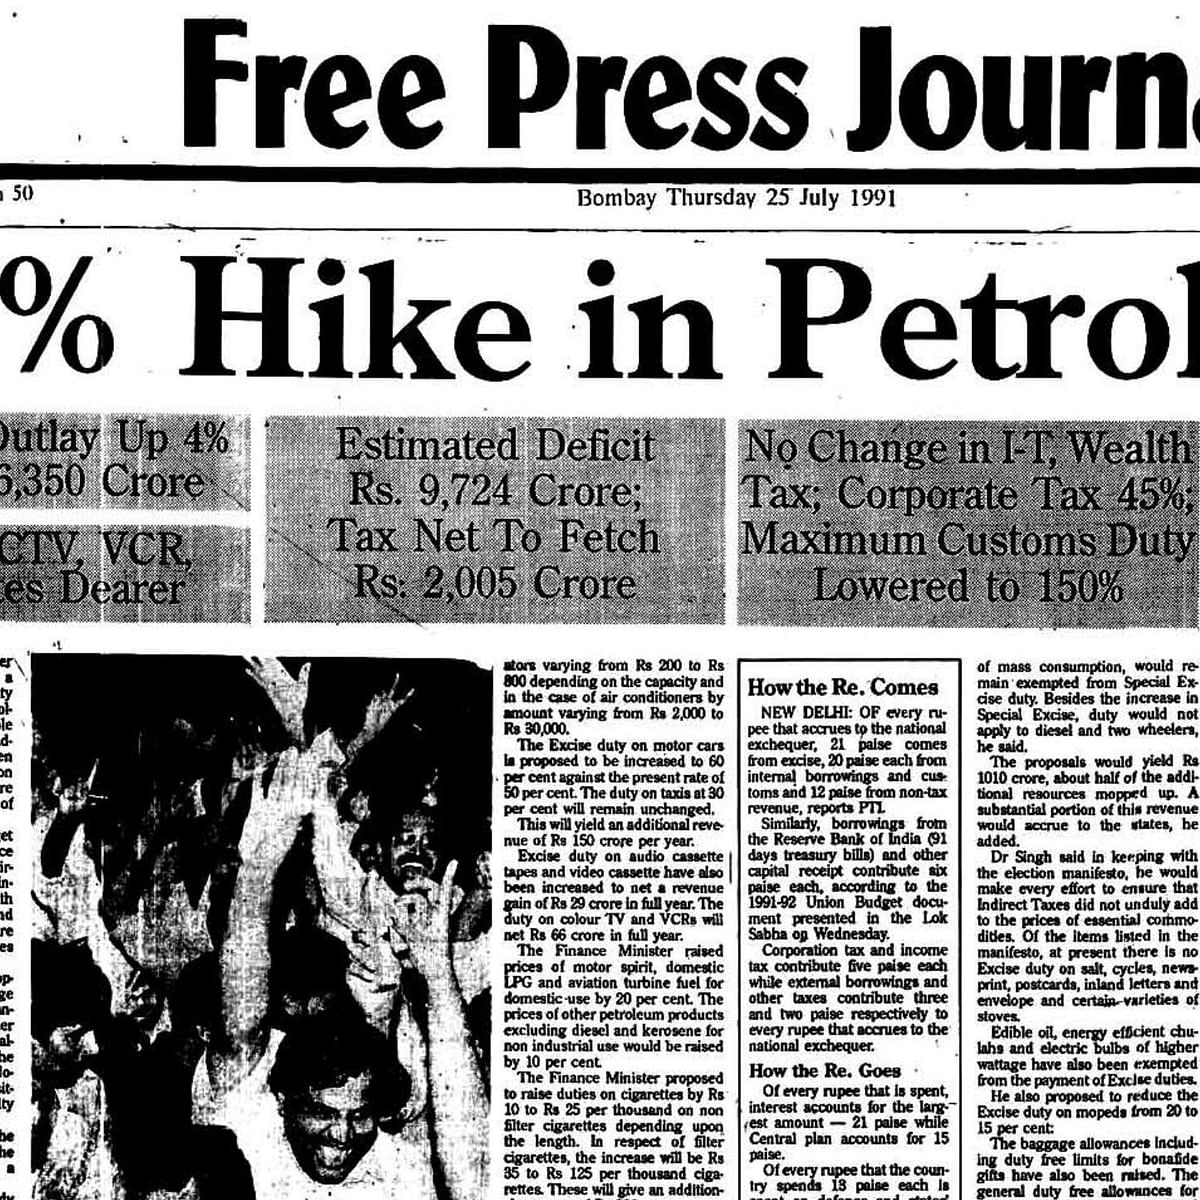 From the FPJ Archives: As India marks 30 years of economic liberalisation, here's a look at Budget Day 1991